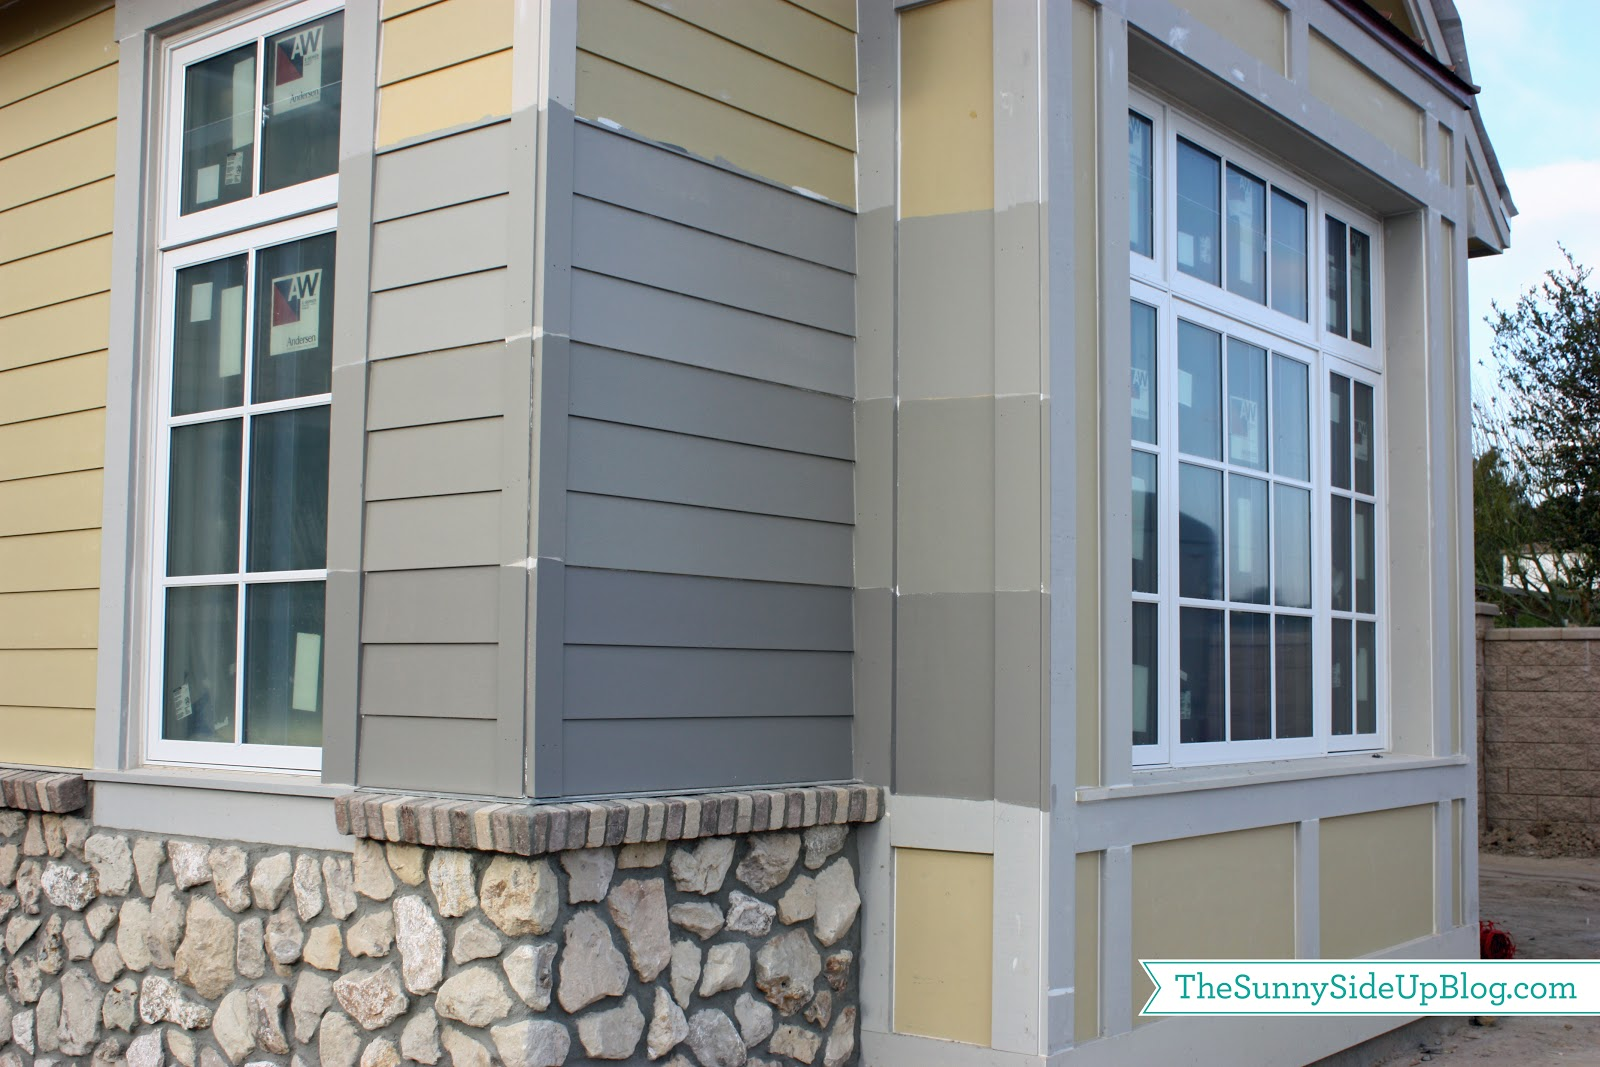 House update the latest the sunny side up blog - Test exterior paint colors online ...